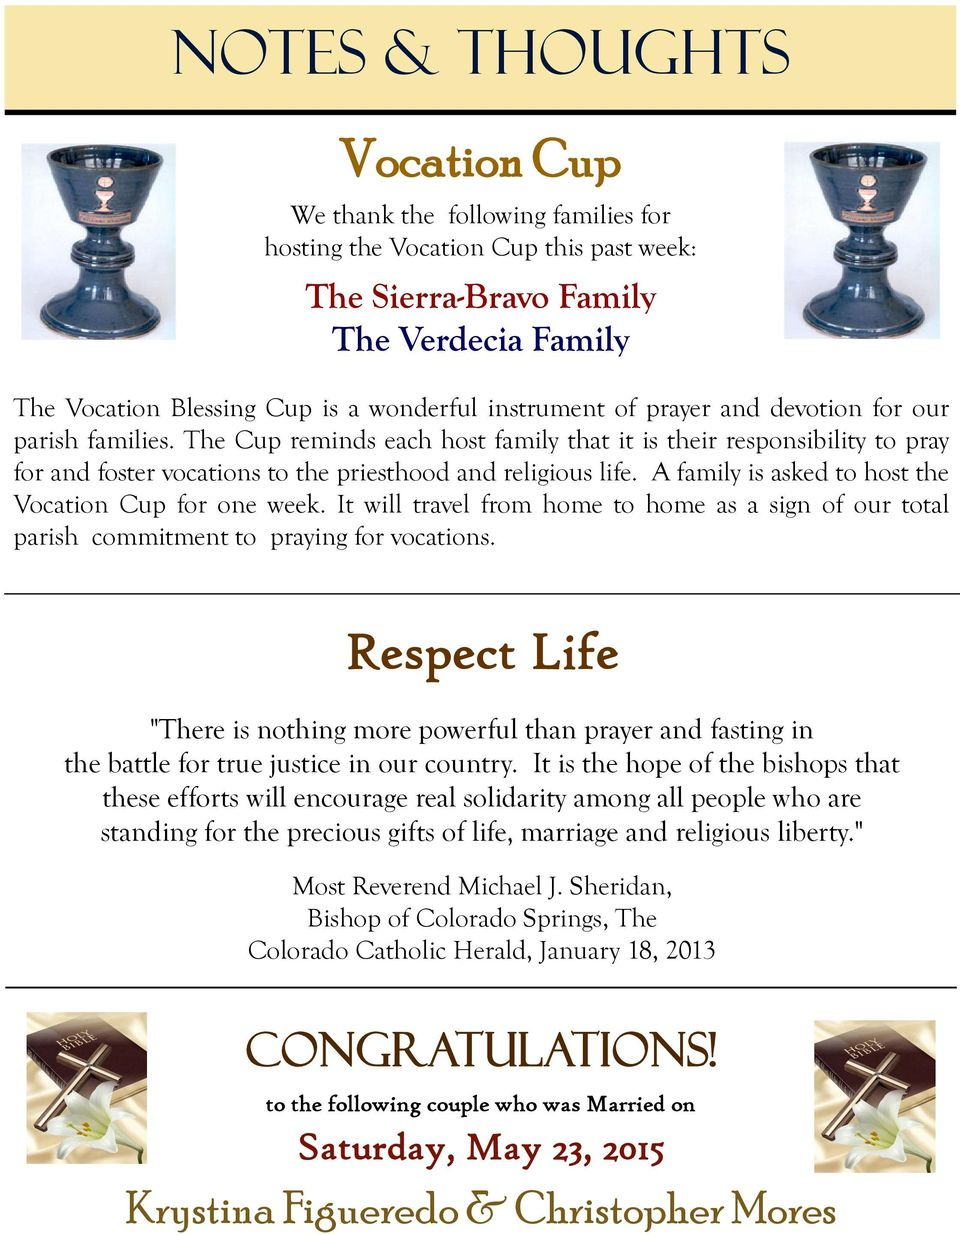 A family is asked to host the Vocation Cup for one week. It will travel from home to home as a sign of our total parish commitment to praying for vocations.